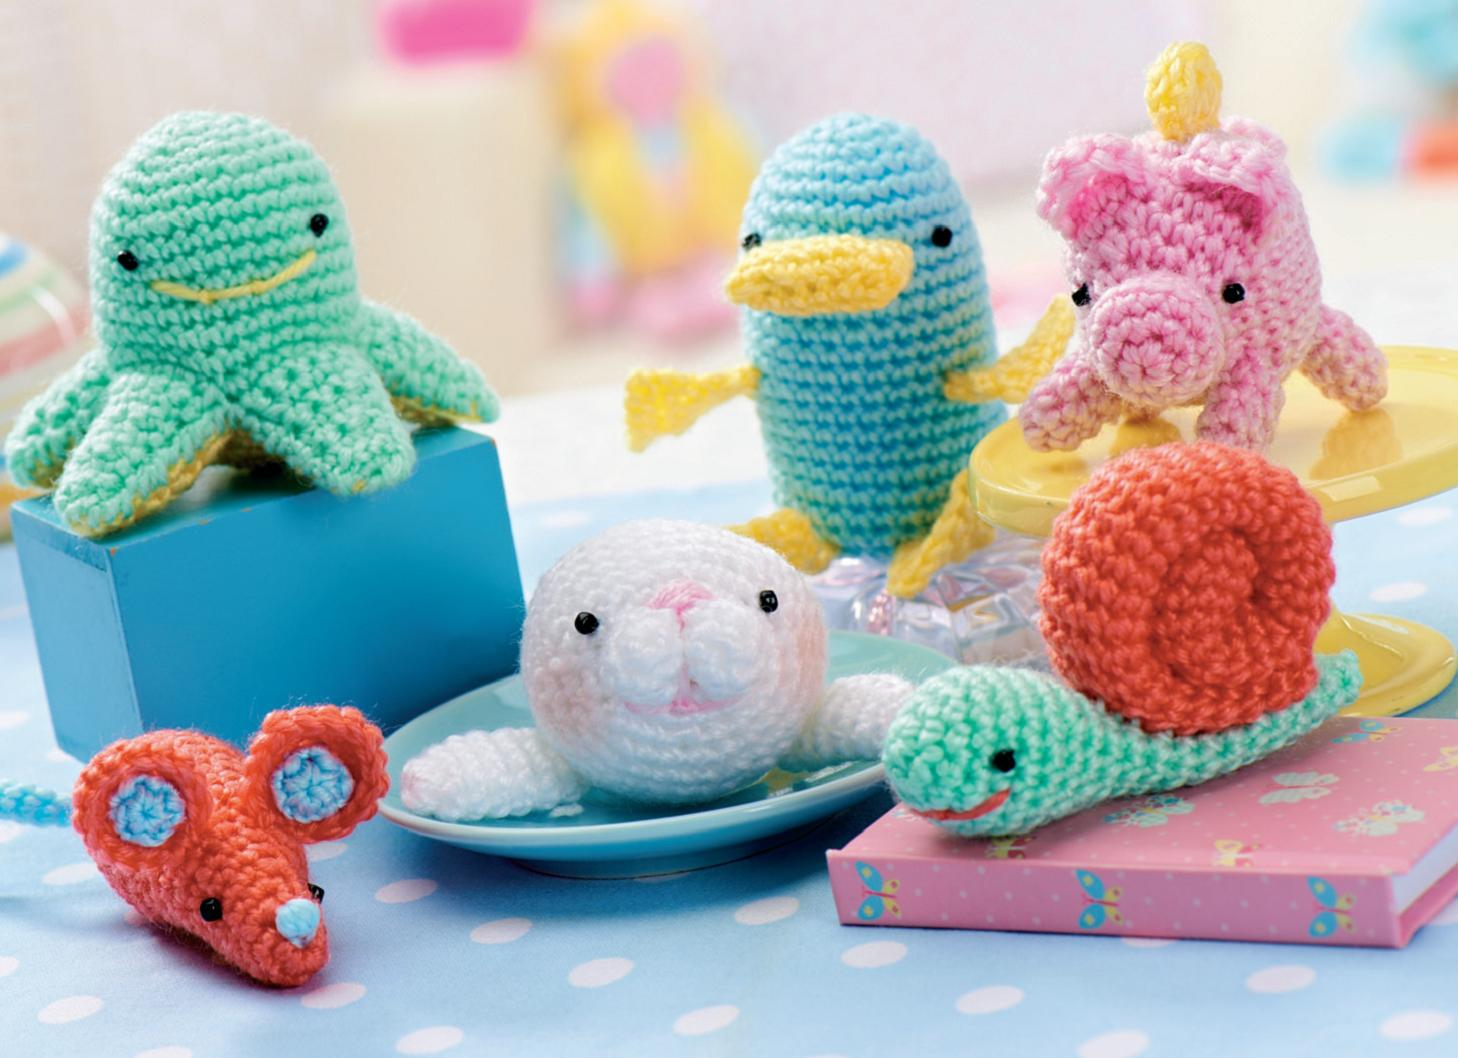 All Free Amigurumi Patterns : Amigurumi creatures Crochet Pattern